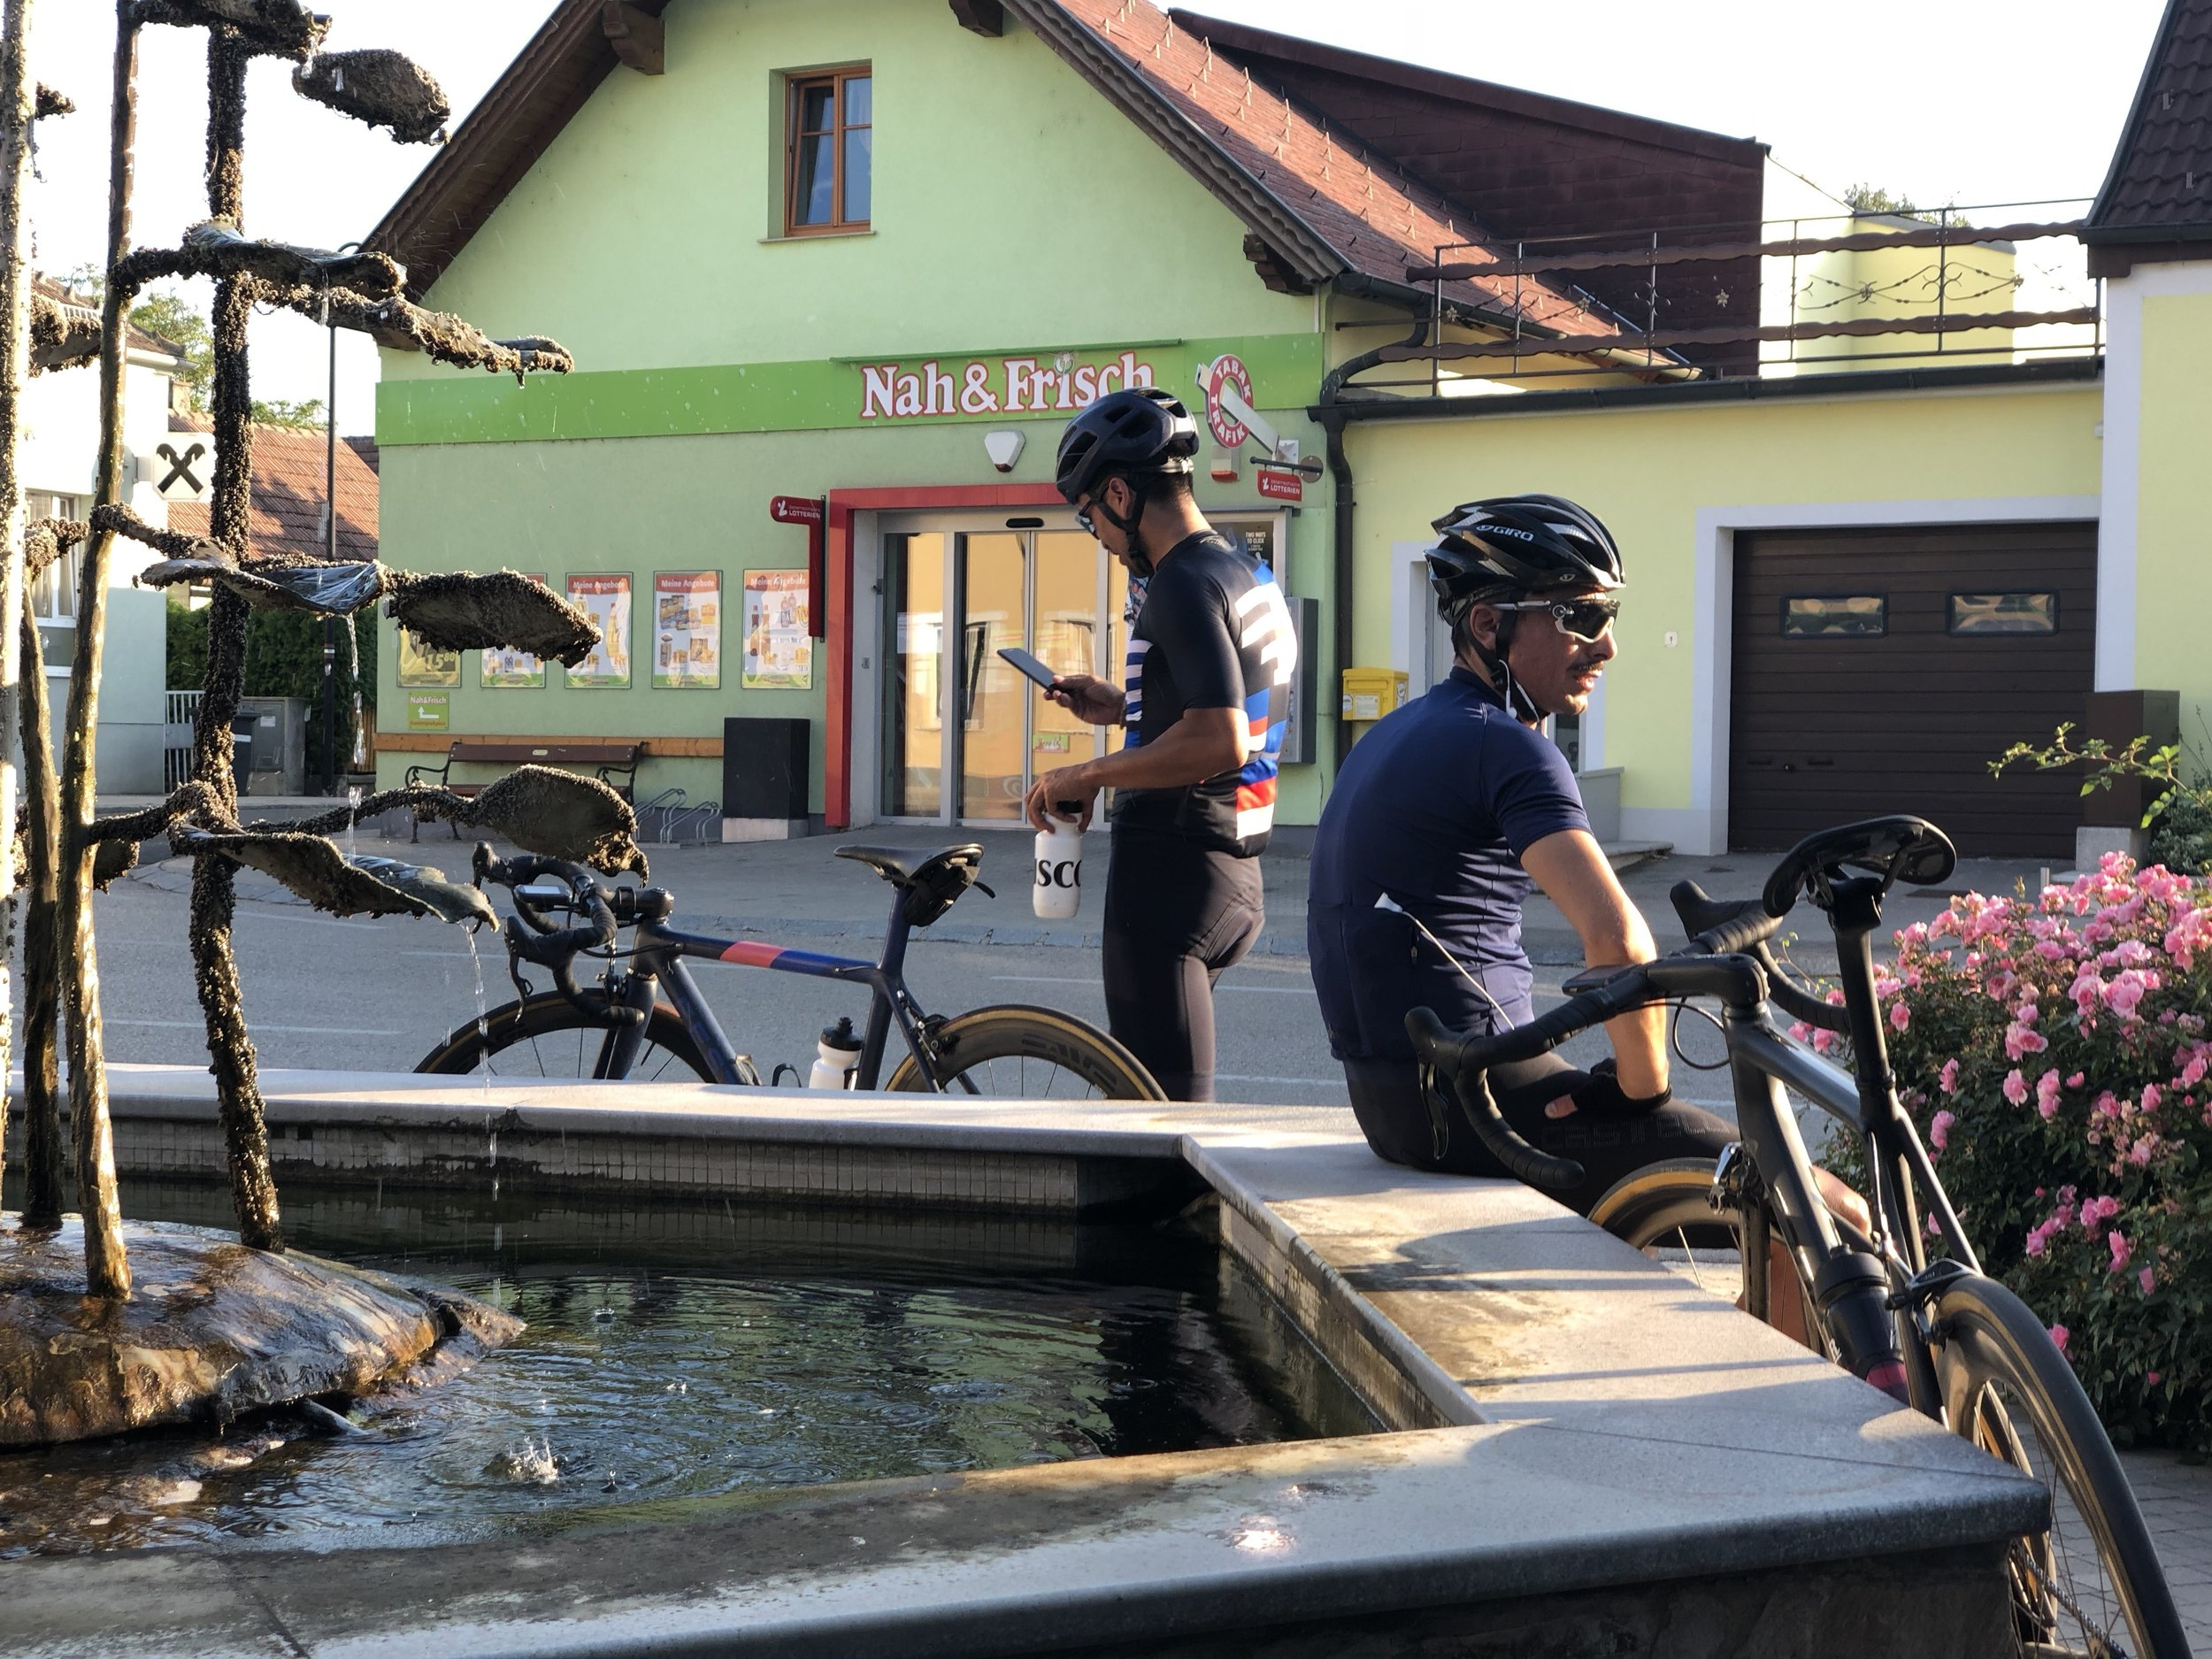 Many villages feature water fountains to allow cyclists to fill their bidons